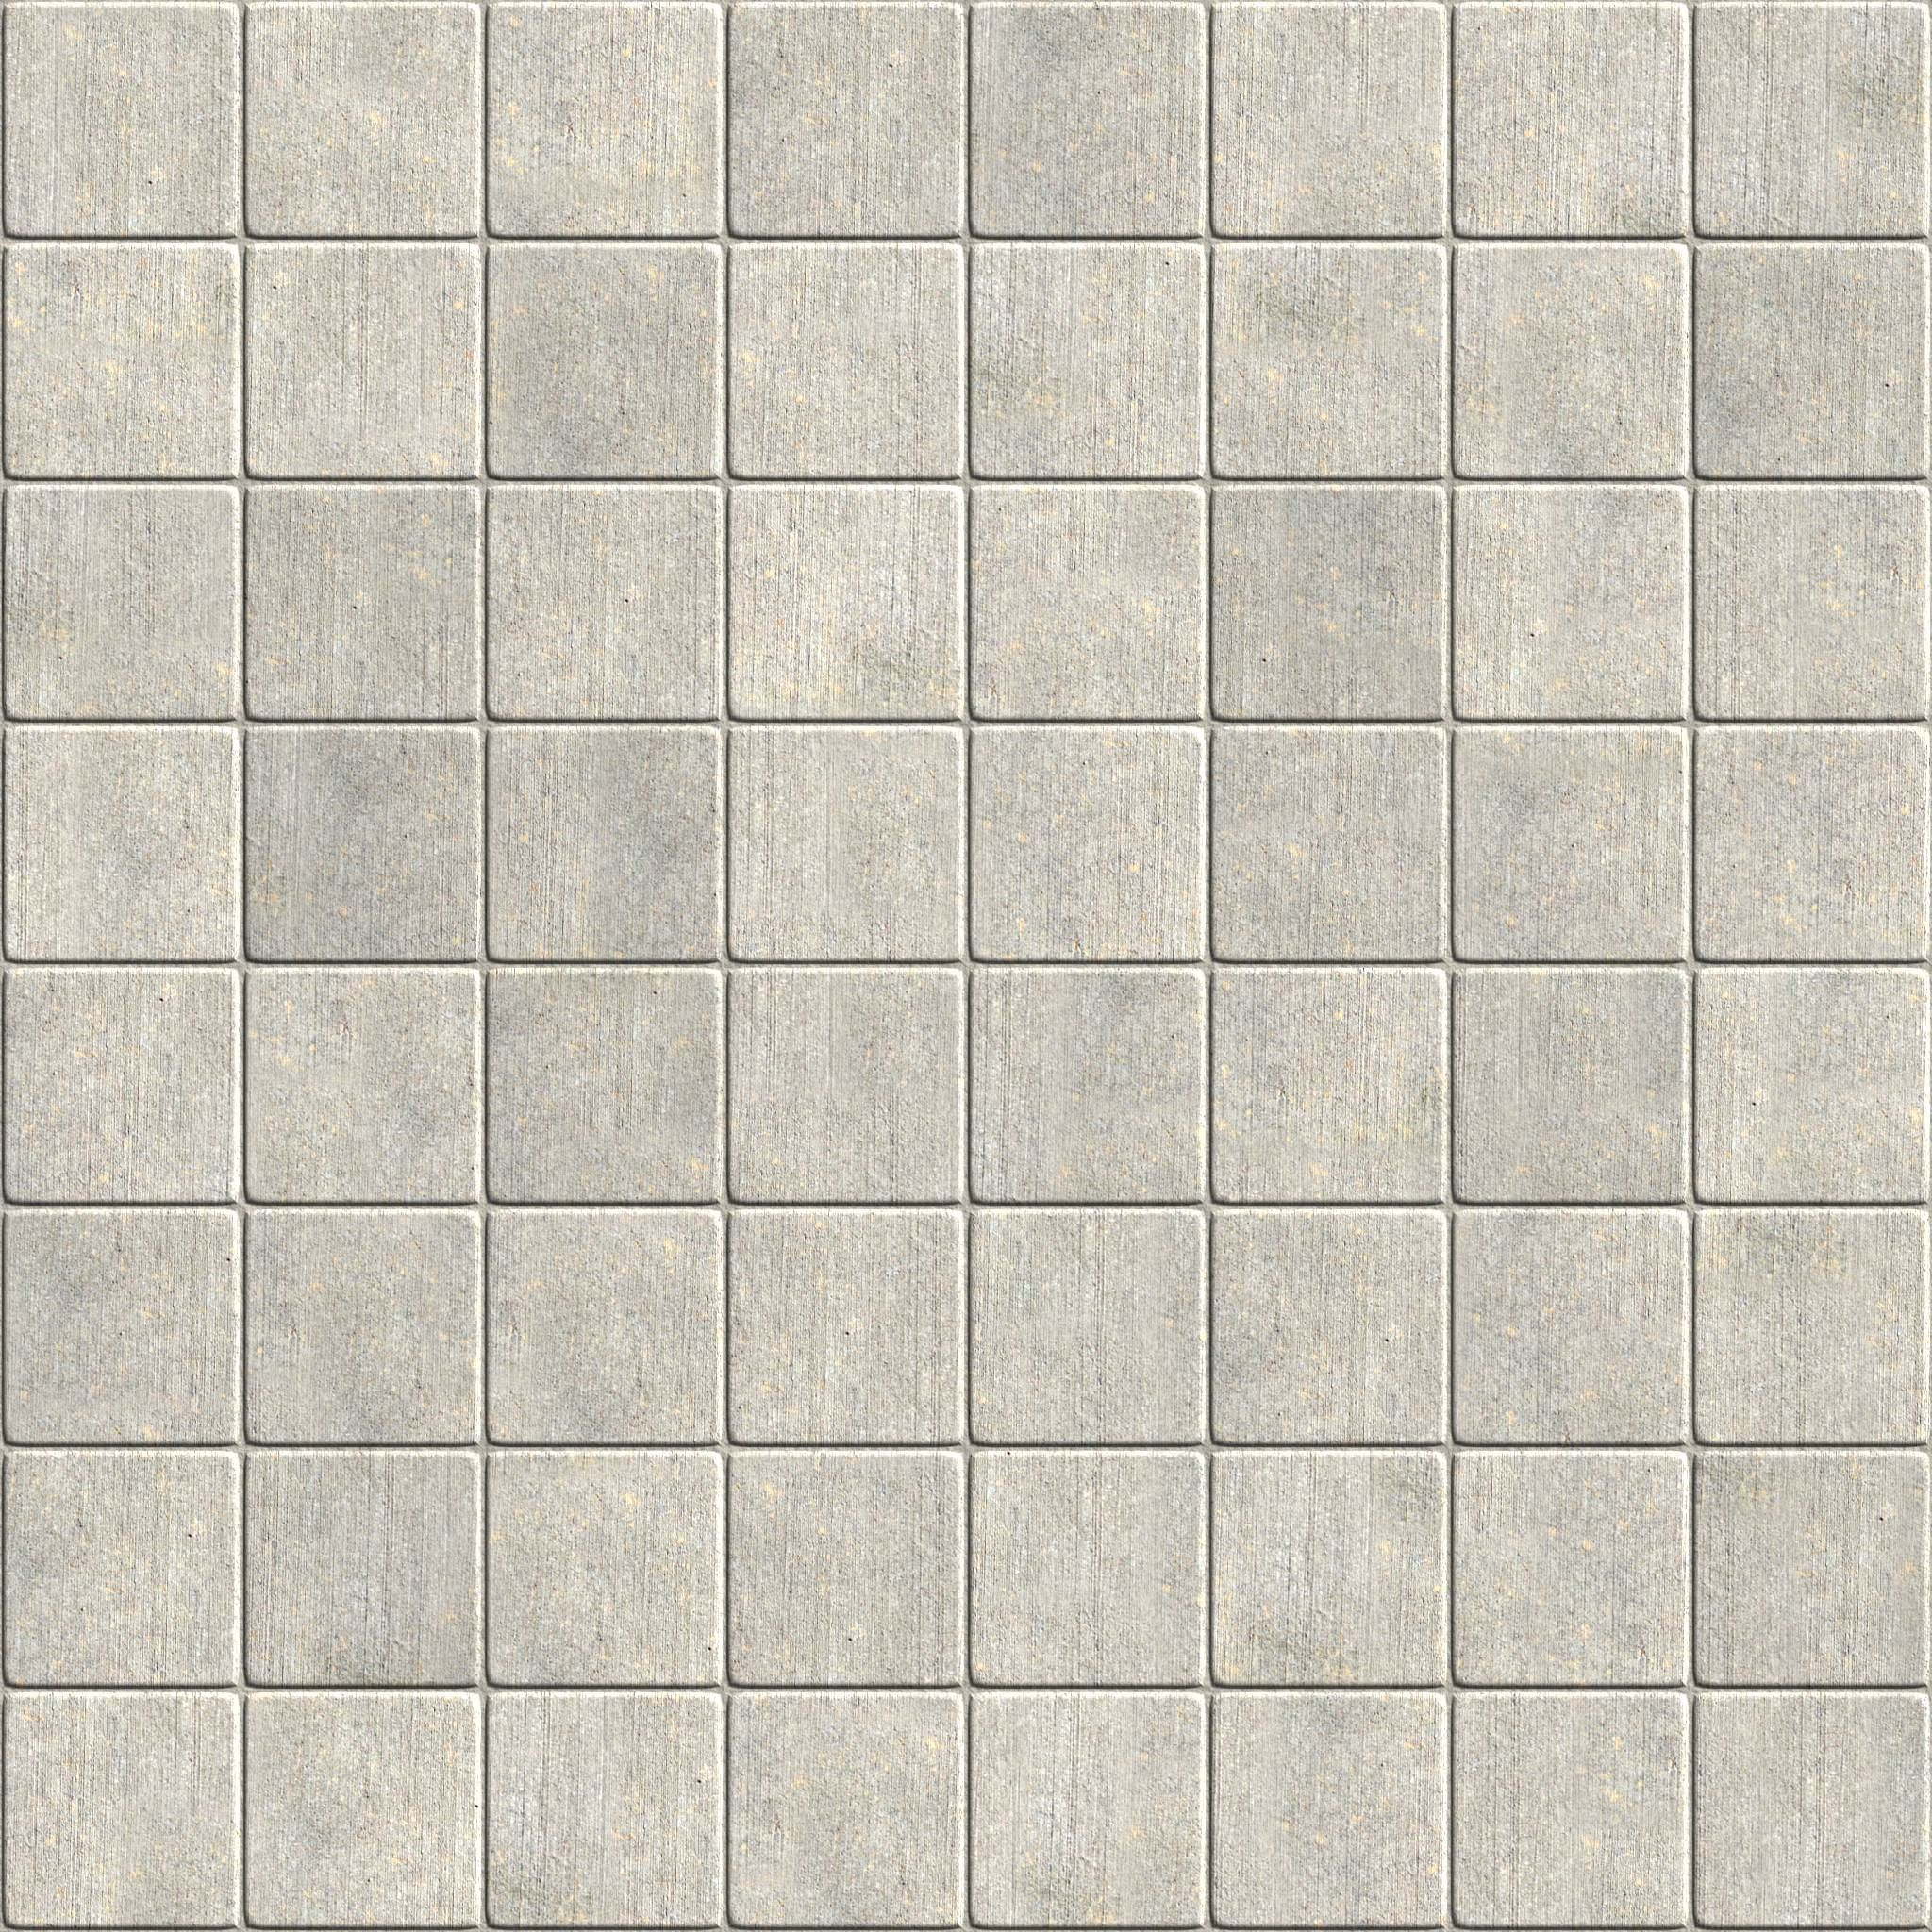 Camoflage Seamless Texture Maps Free To Use Page